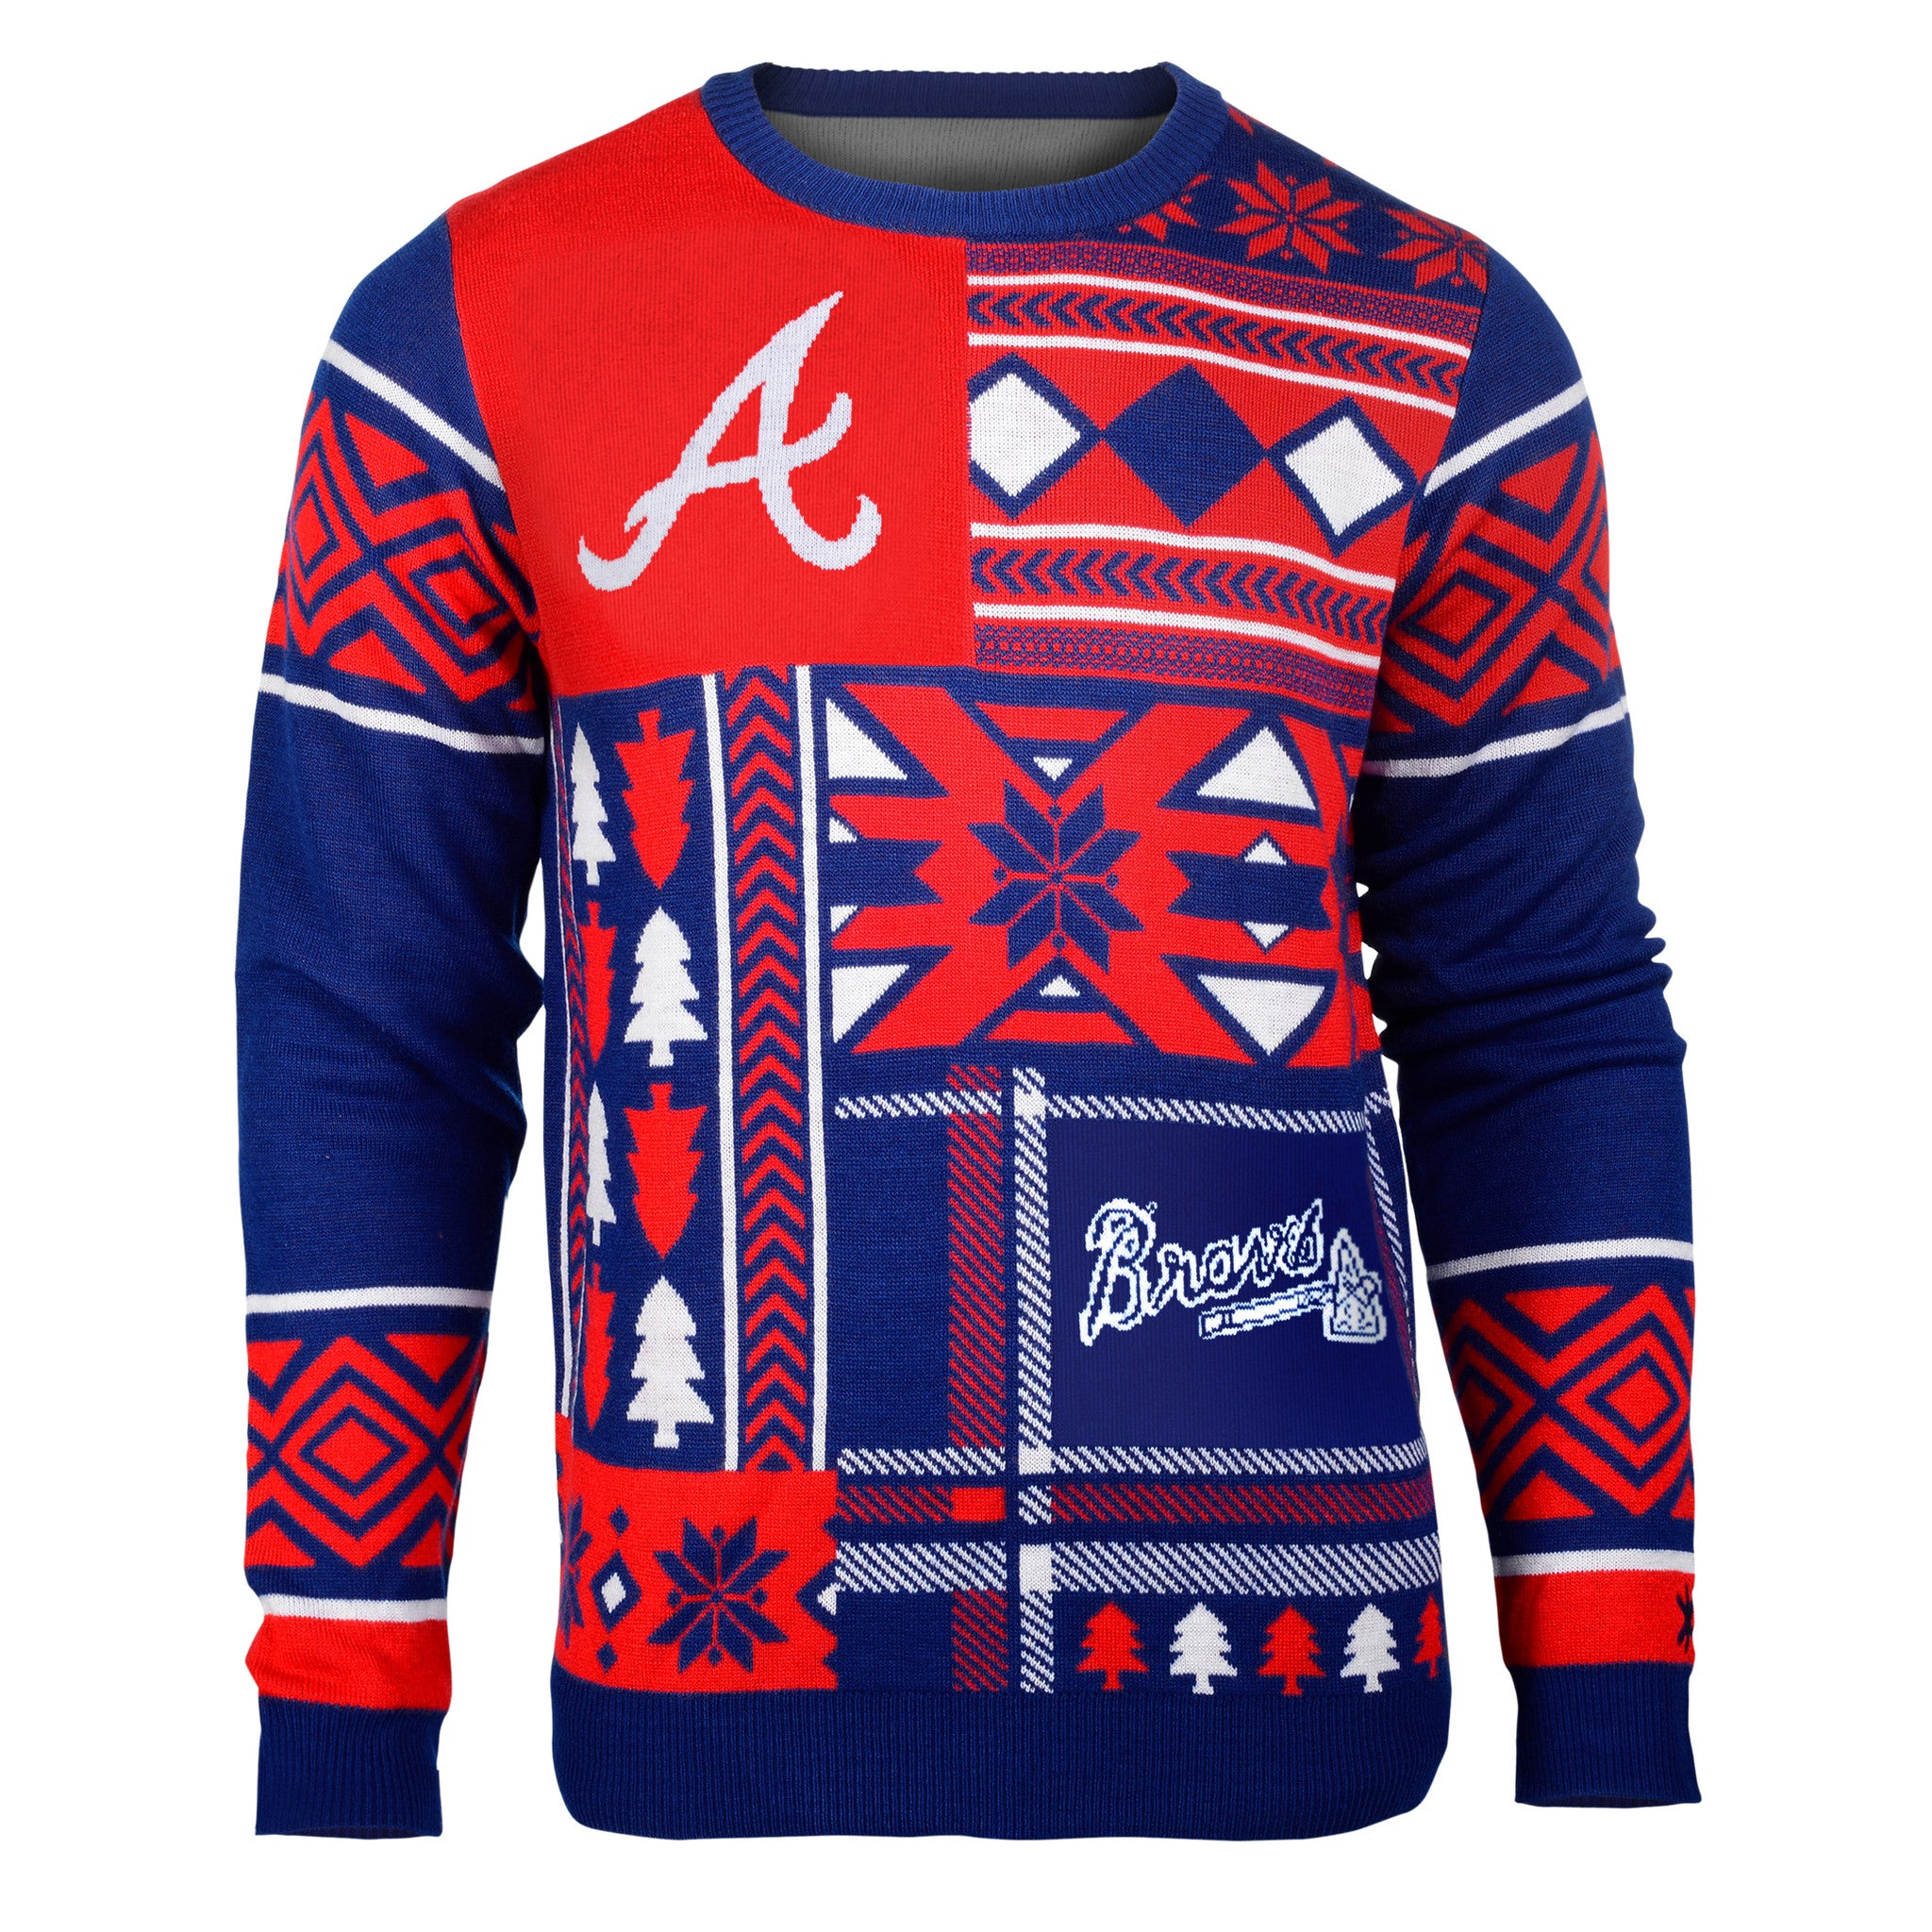 Ohio State Patches Ugly Crew Neck Sweater - UglyTeams